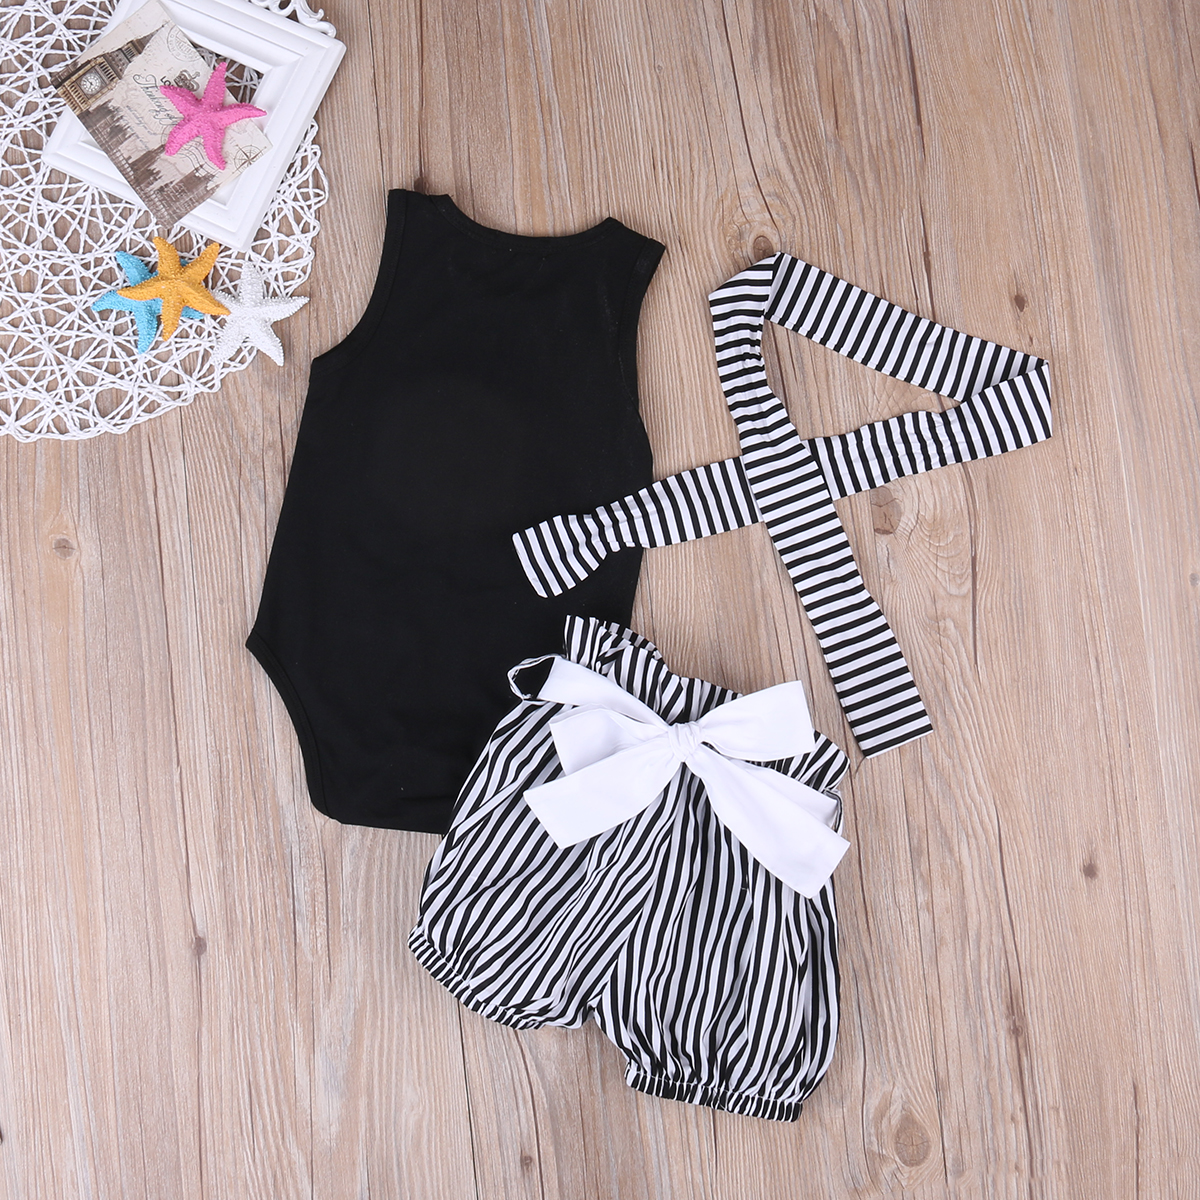 3PCS-Set-Newborn-Baby-Girl-Clothes-2017-Summer-Sleeveless-Slip-Romper-Striped-Bloomers-Bottom-Outfit-Toddler-Kids-Clothing-5